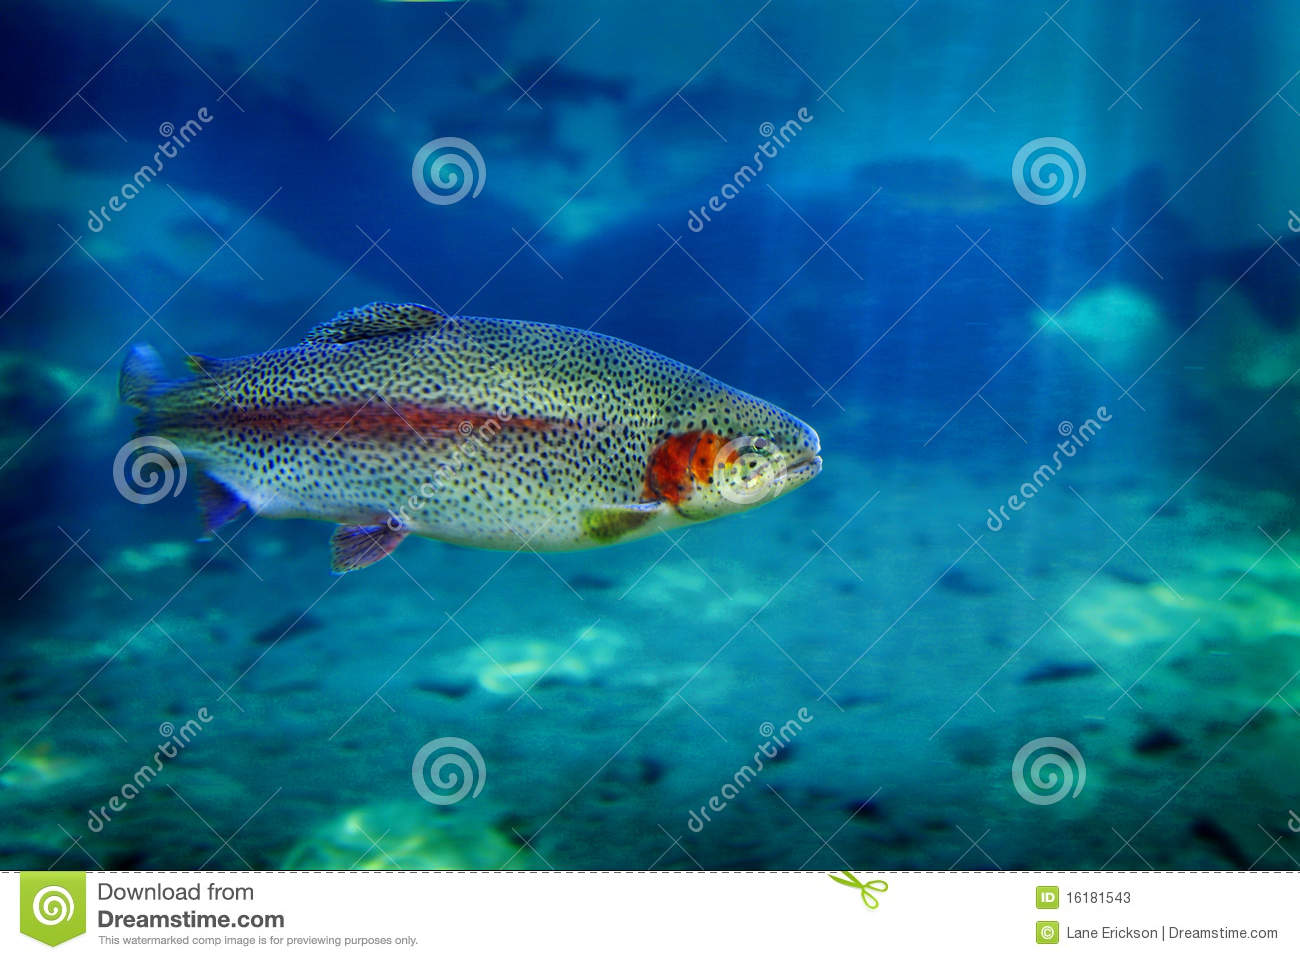 Trout fish swimming stock image image of fresh seafood for Dream of fish swimming